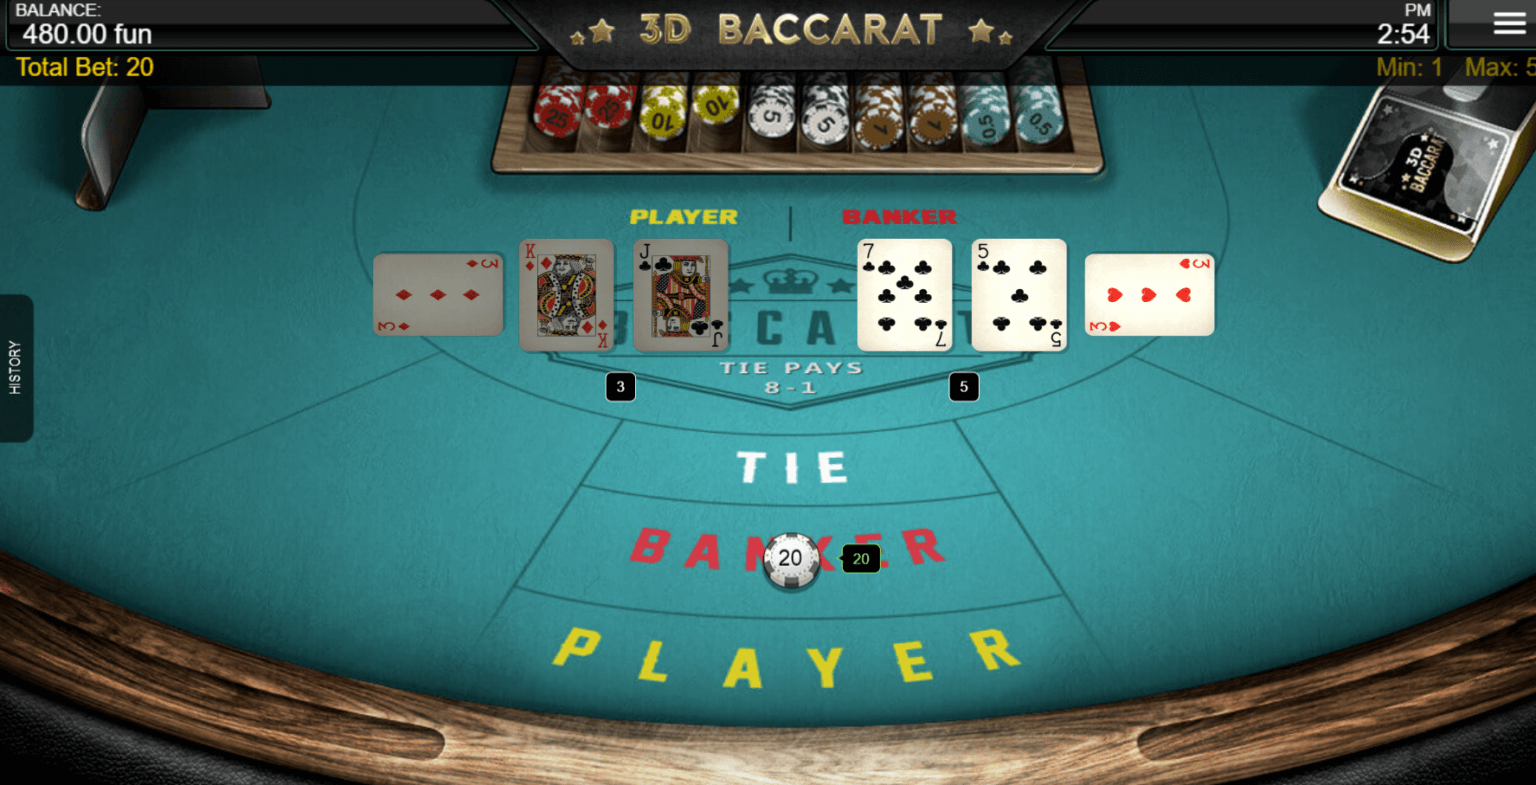 A screenshot of 3D Baccarat where the banker beats the player